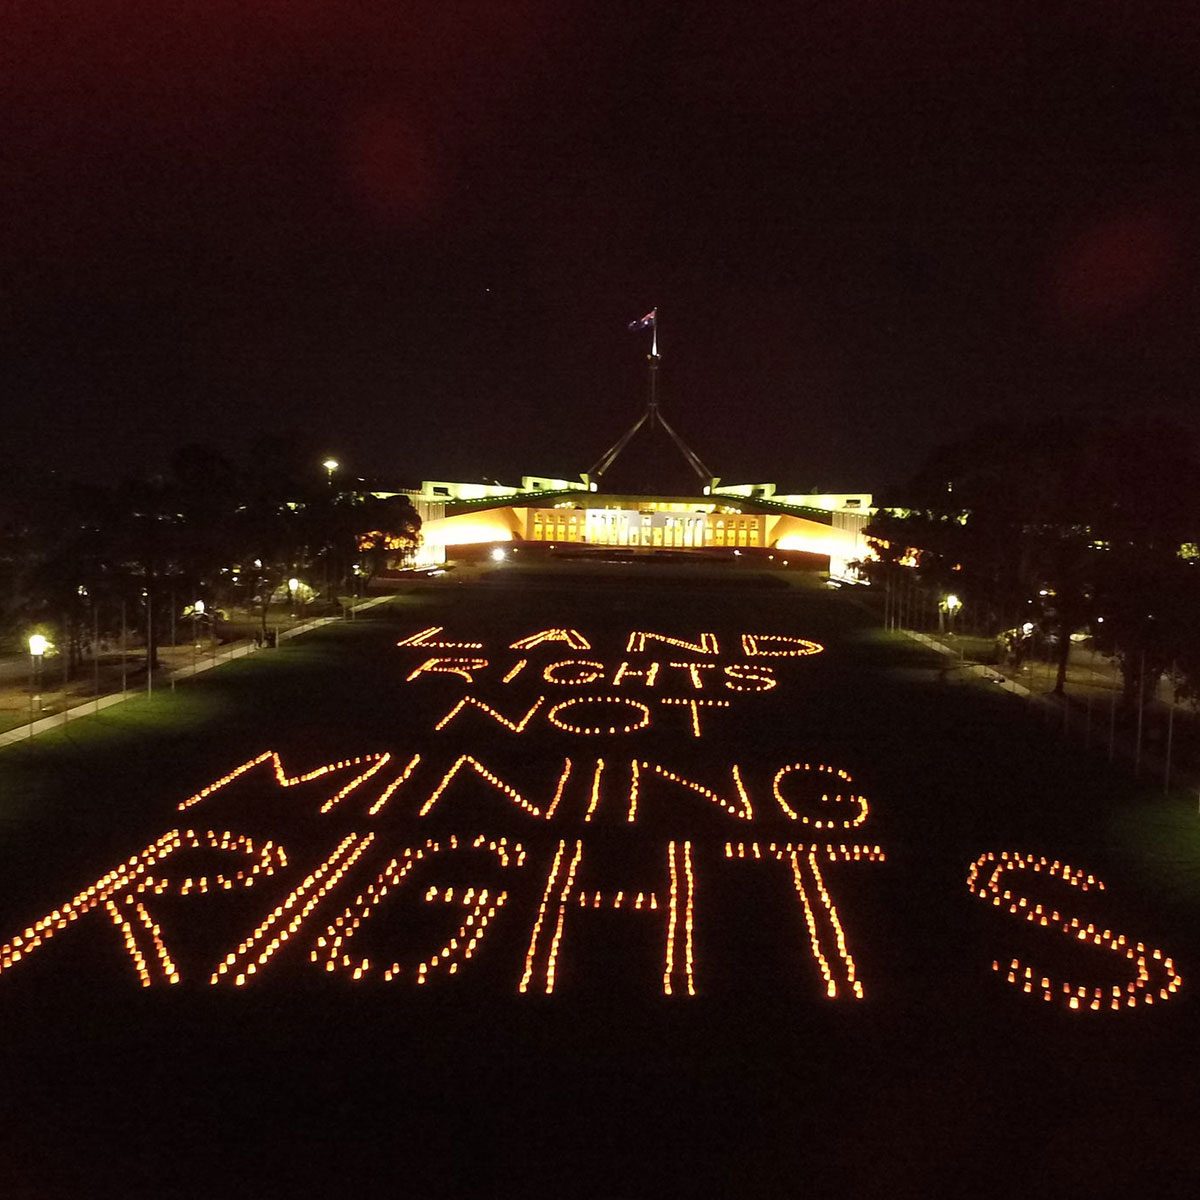 We have to keep fighting for Land Rights not mining rights